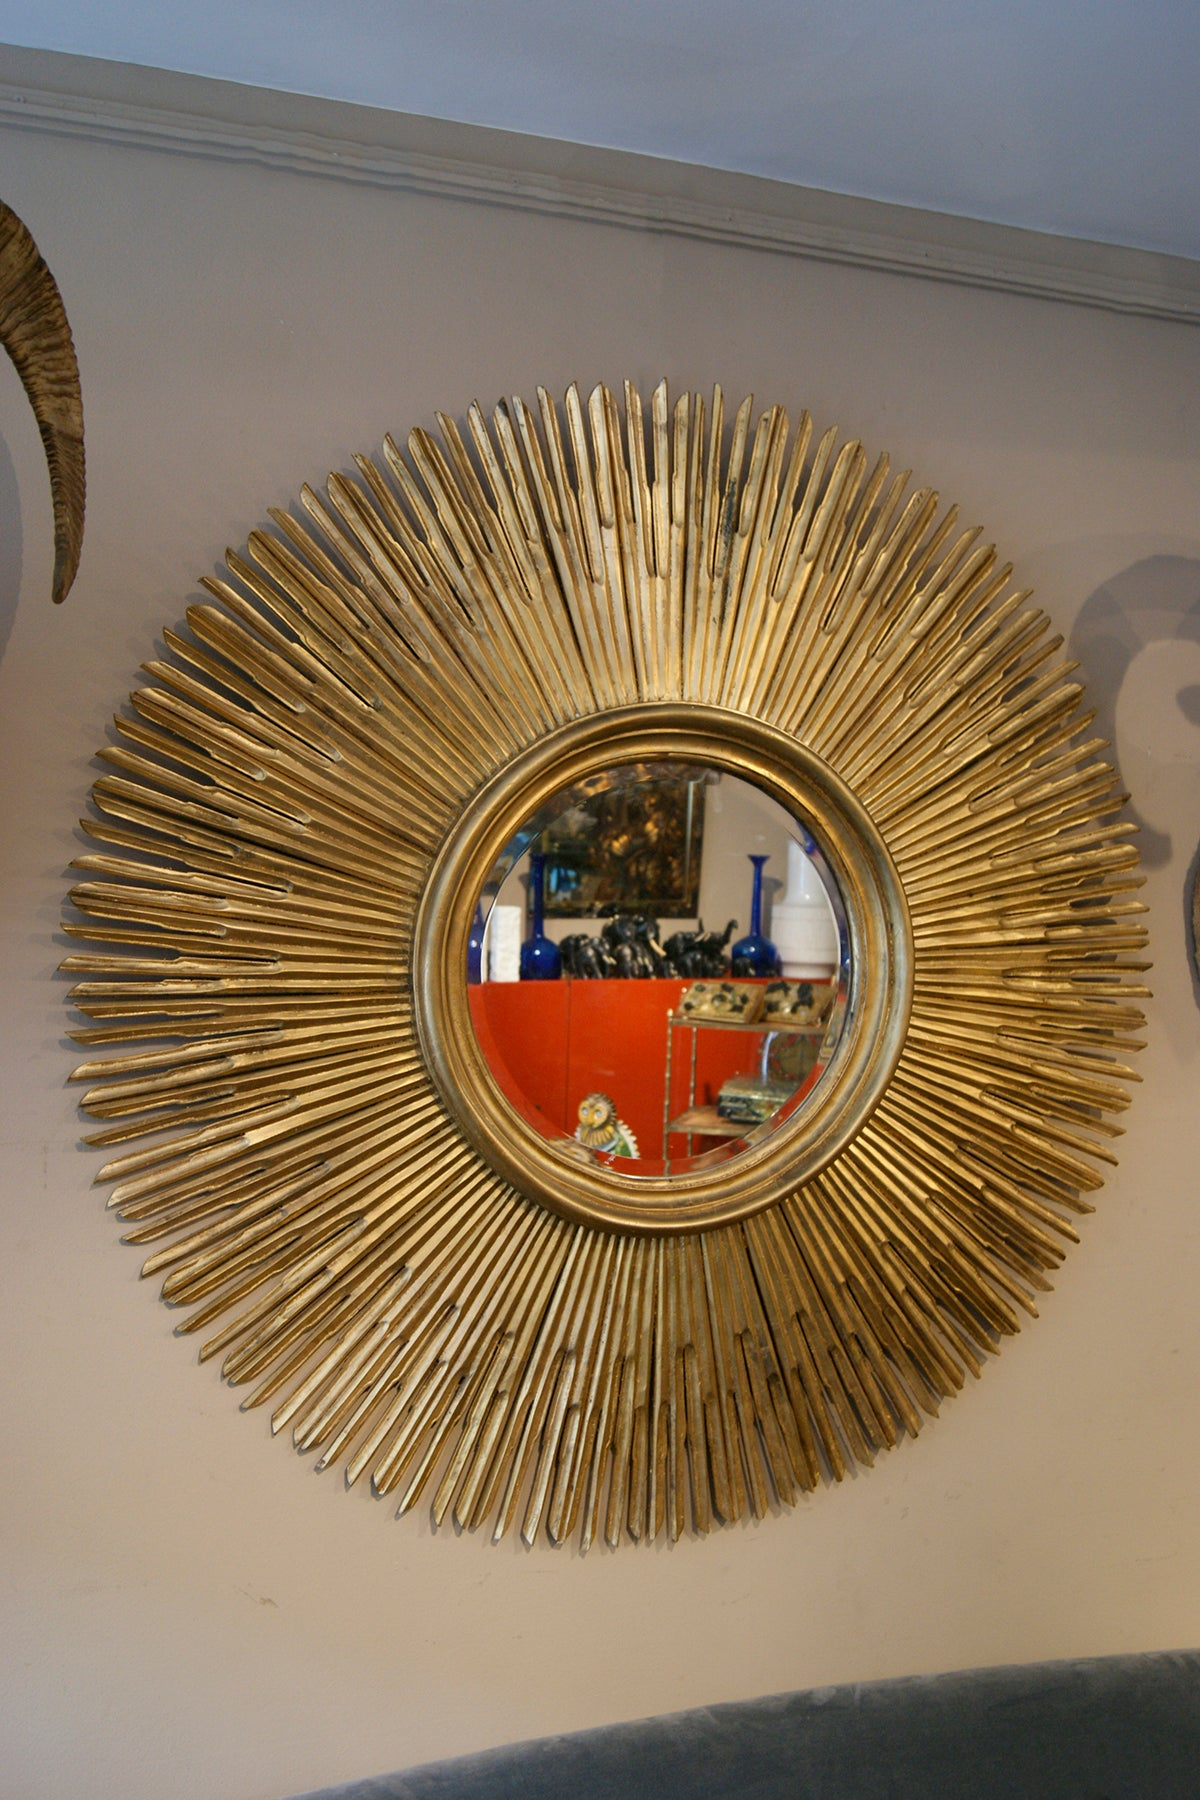 Giant Carved Wood Sunburst Mirror